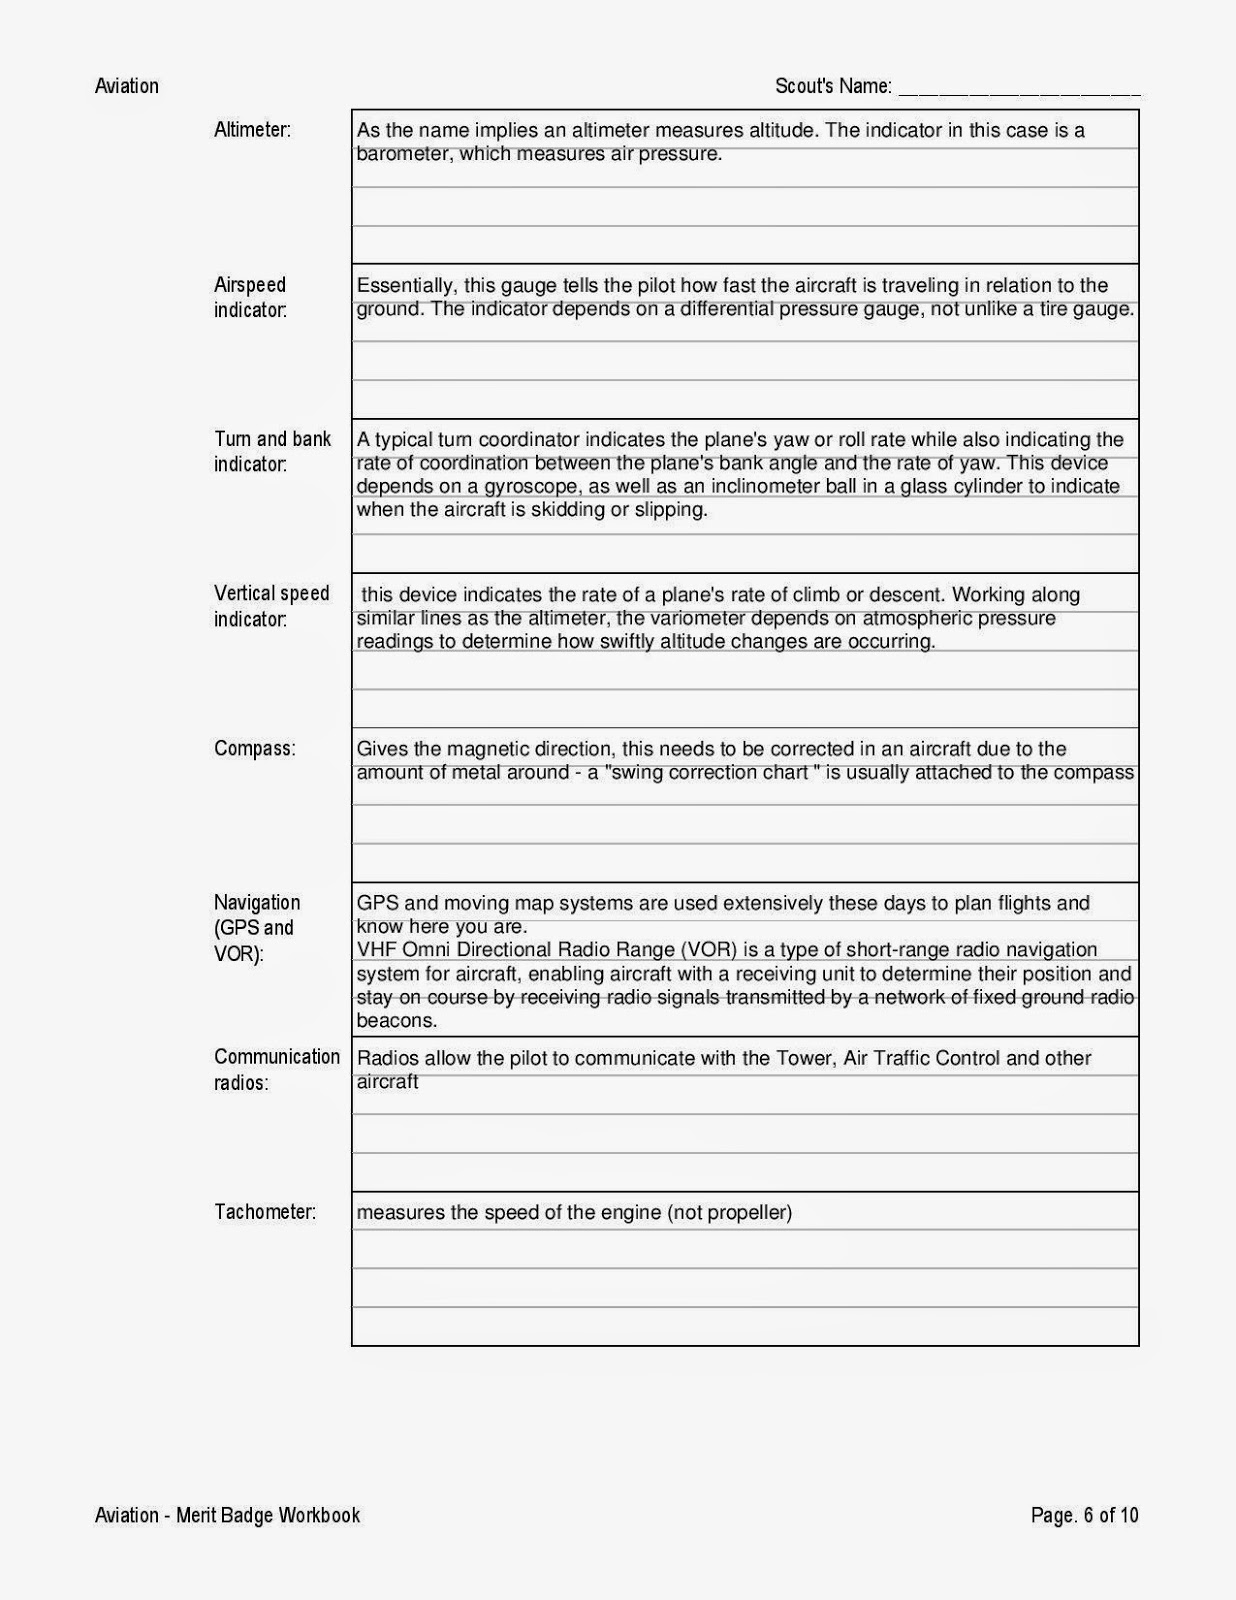 worksheet Golf Merit Badge Worksheet worksheet radio merit badge grass fedjp study site boy scout troop 107 greensboro nc aviation workbook workbook